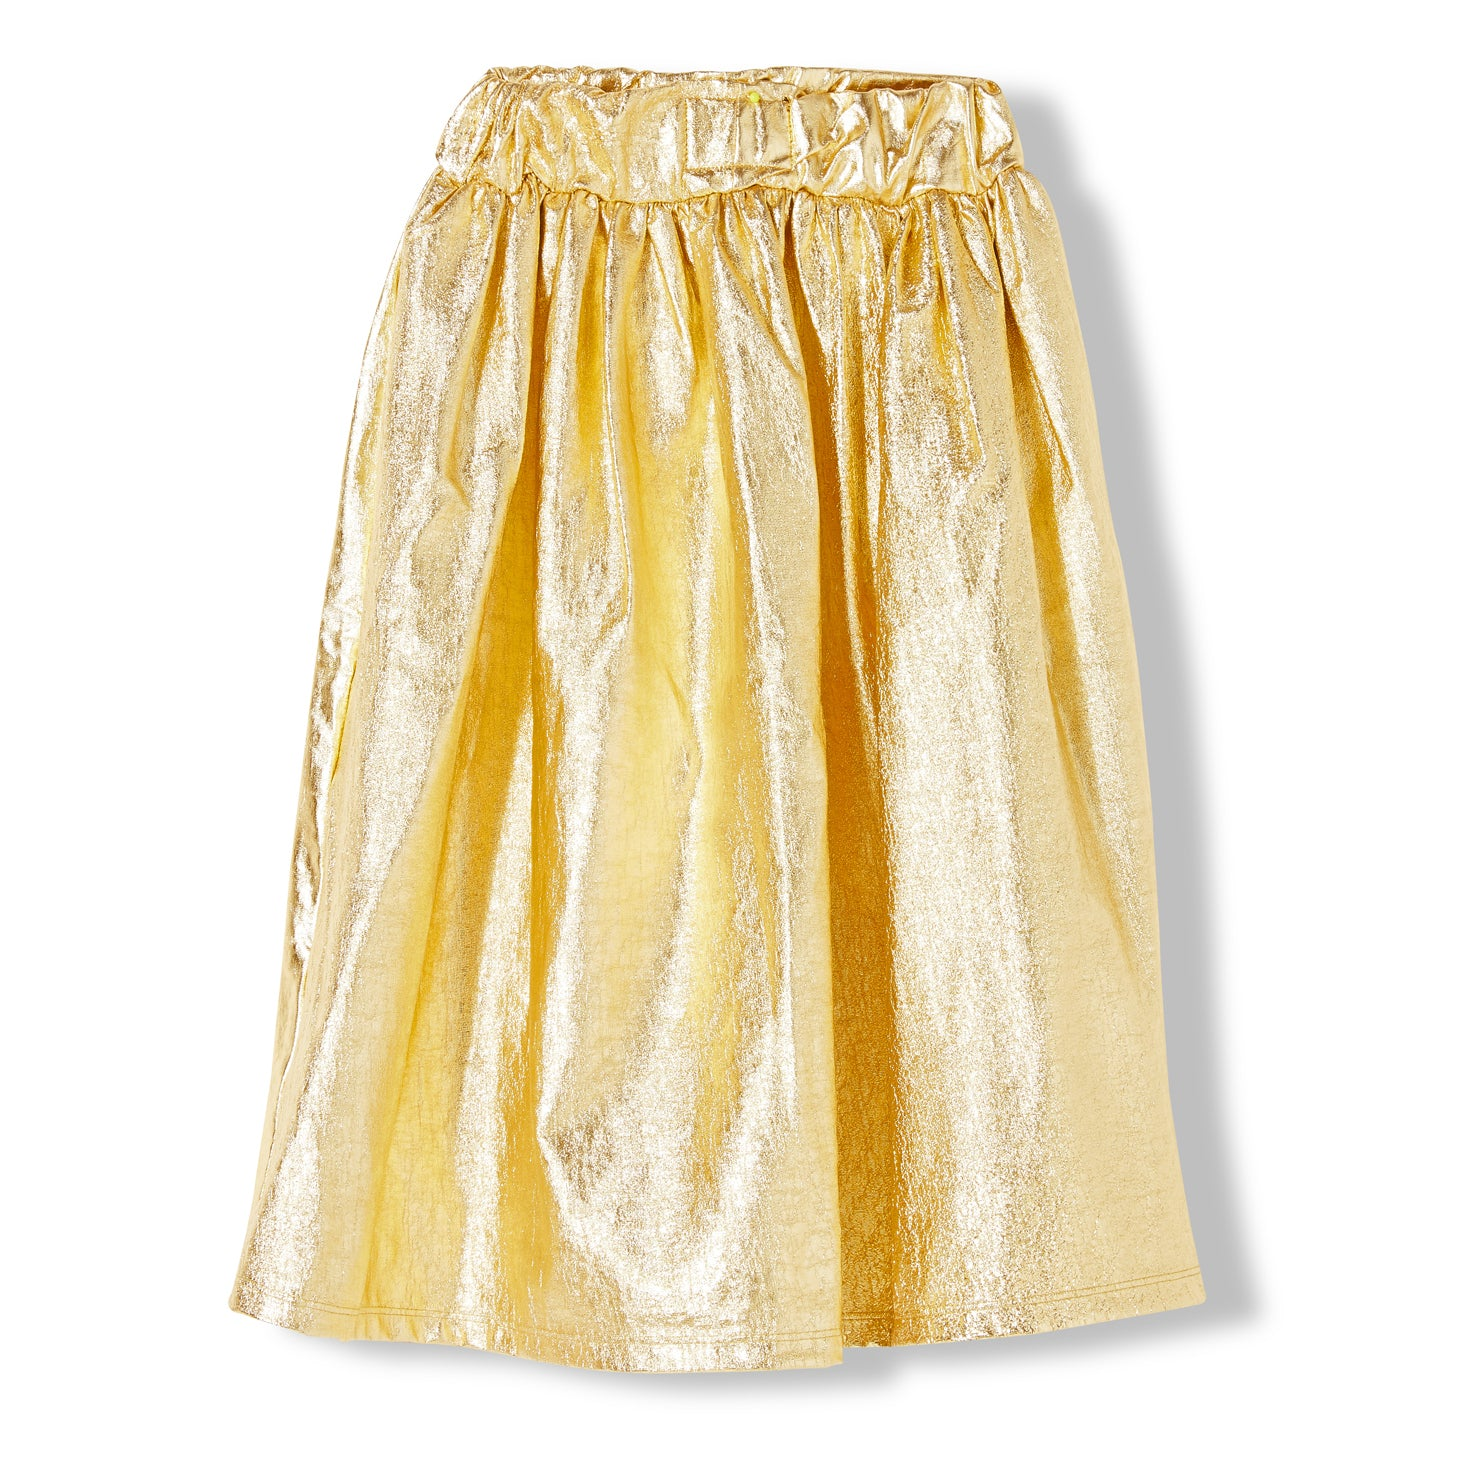 PARTY Gold Metal -  Knitted Long Skirt